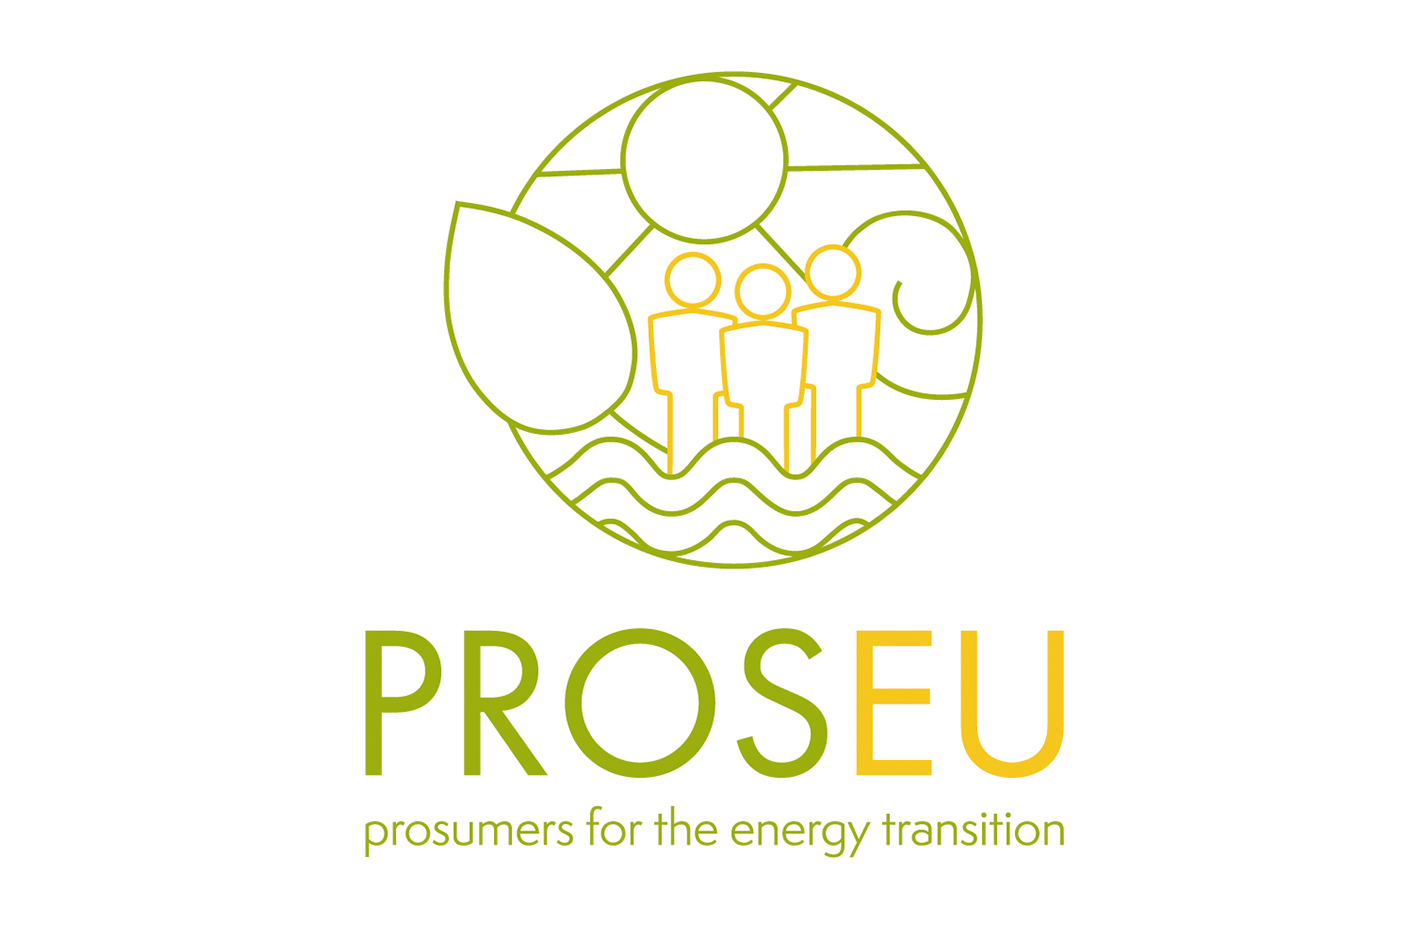 PROSEU – Prosumers for the Energy Transition